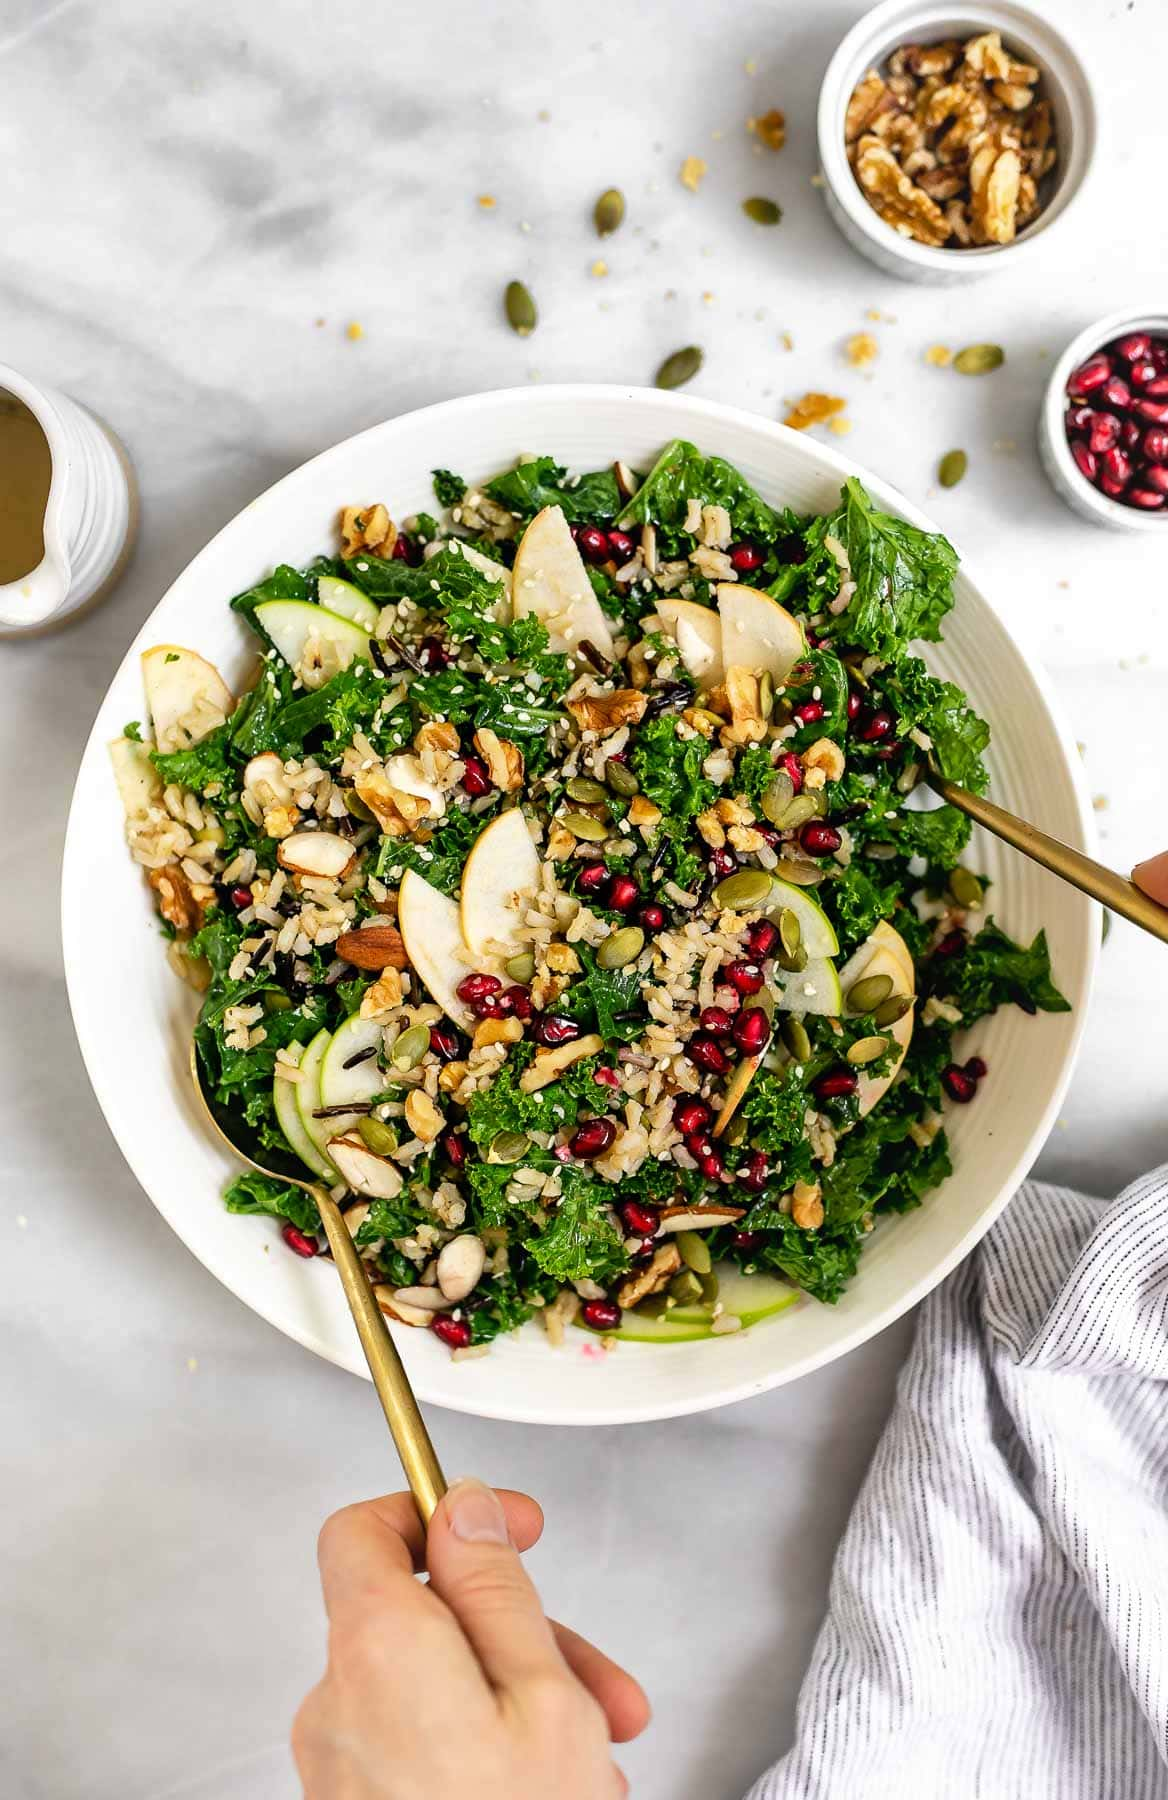 Tossing the apple and kale salad with two gold spoons.